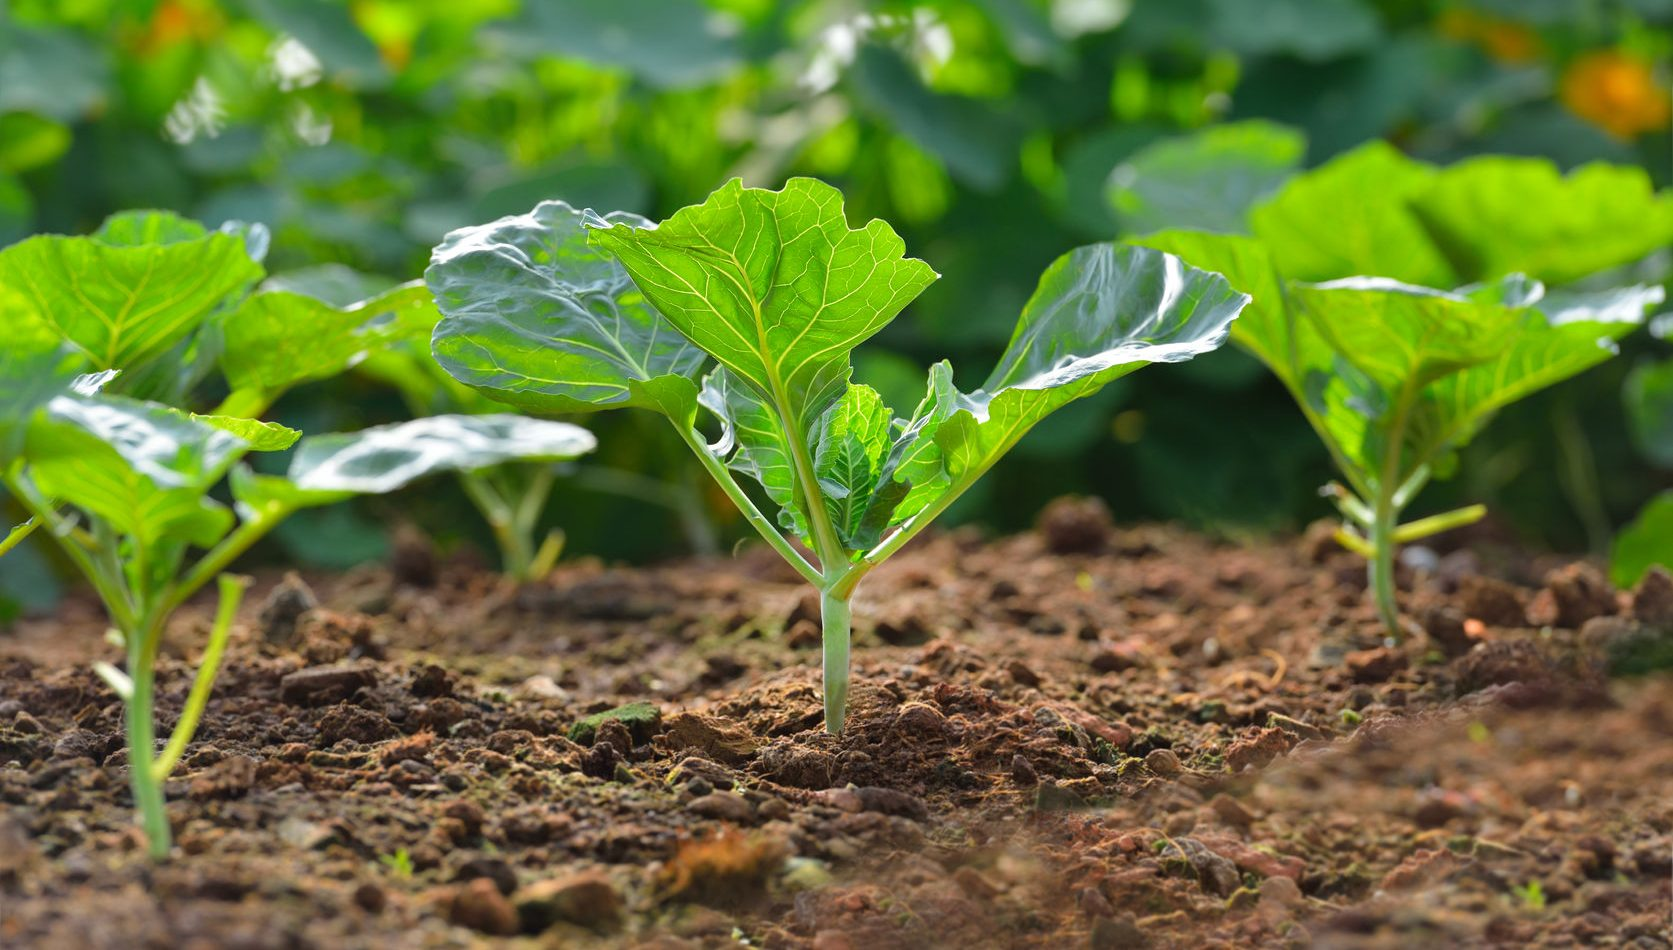 47350130 - chinese kale vegetable growing out of the earth on in garden